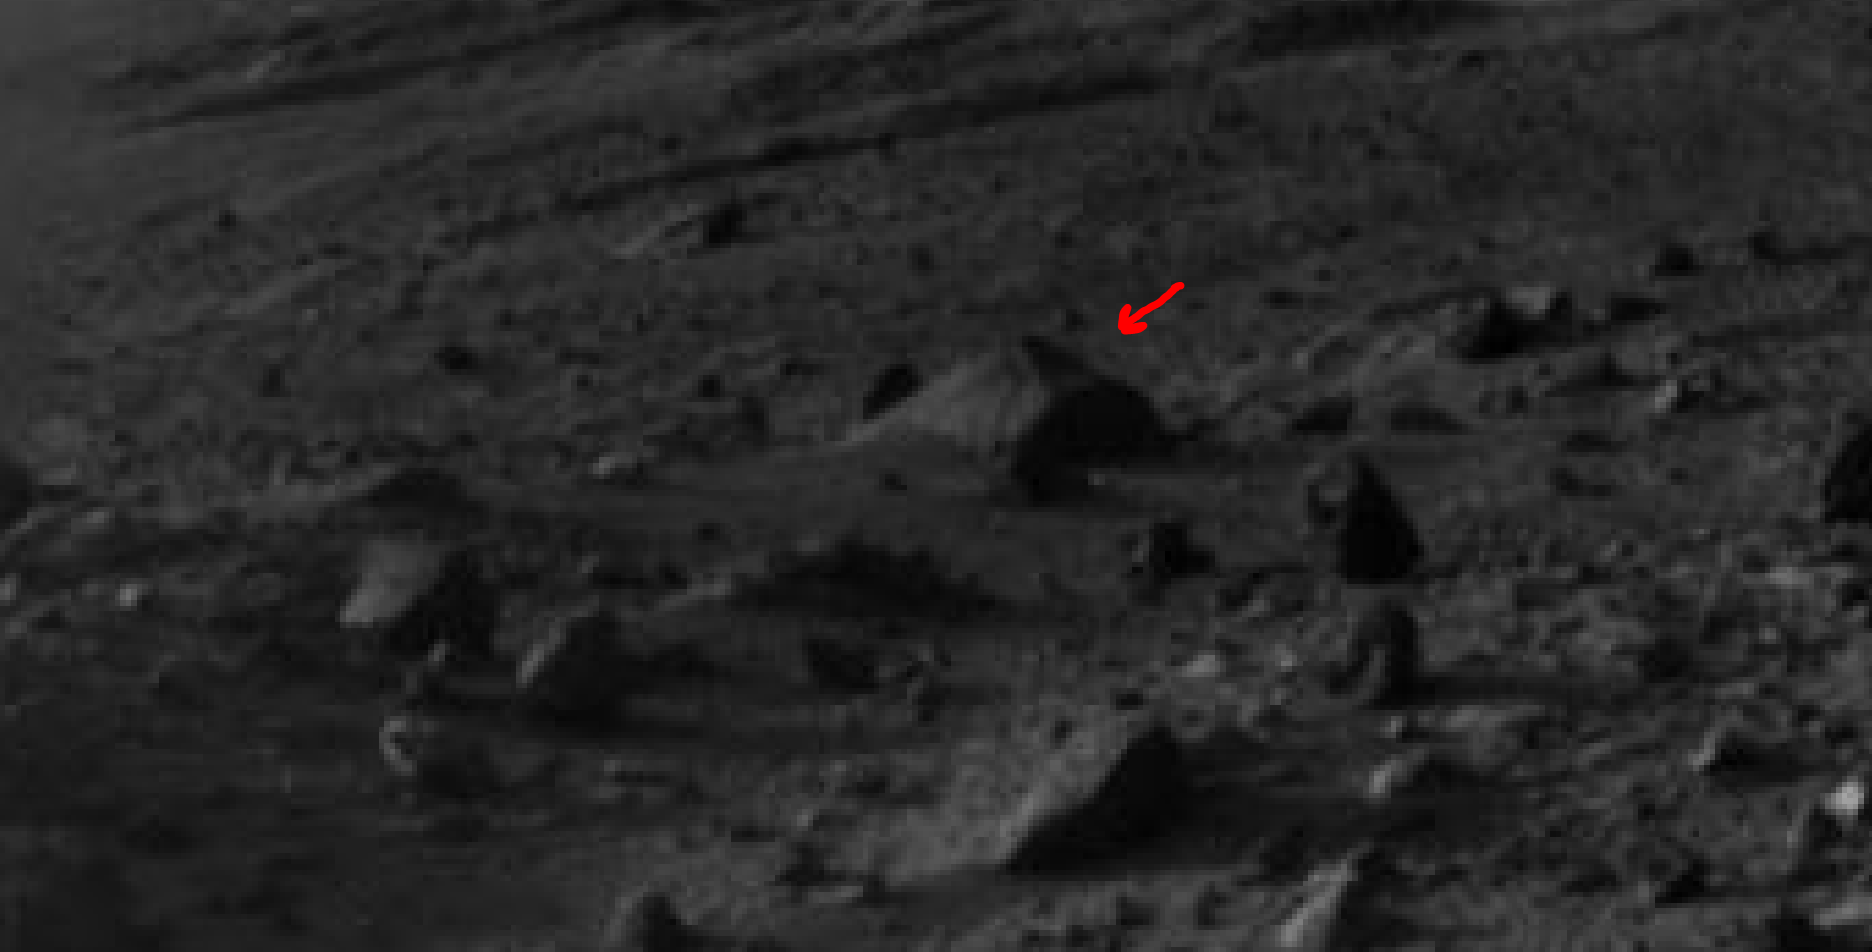 mars sol 1405 anomaly artifacts 20 was life on mars